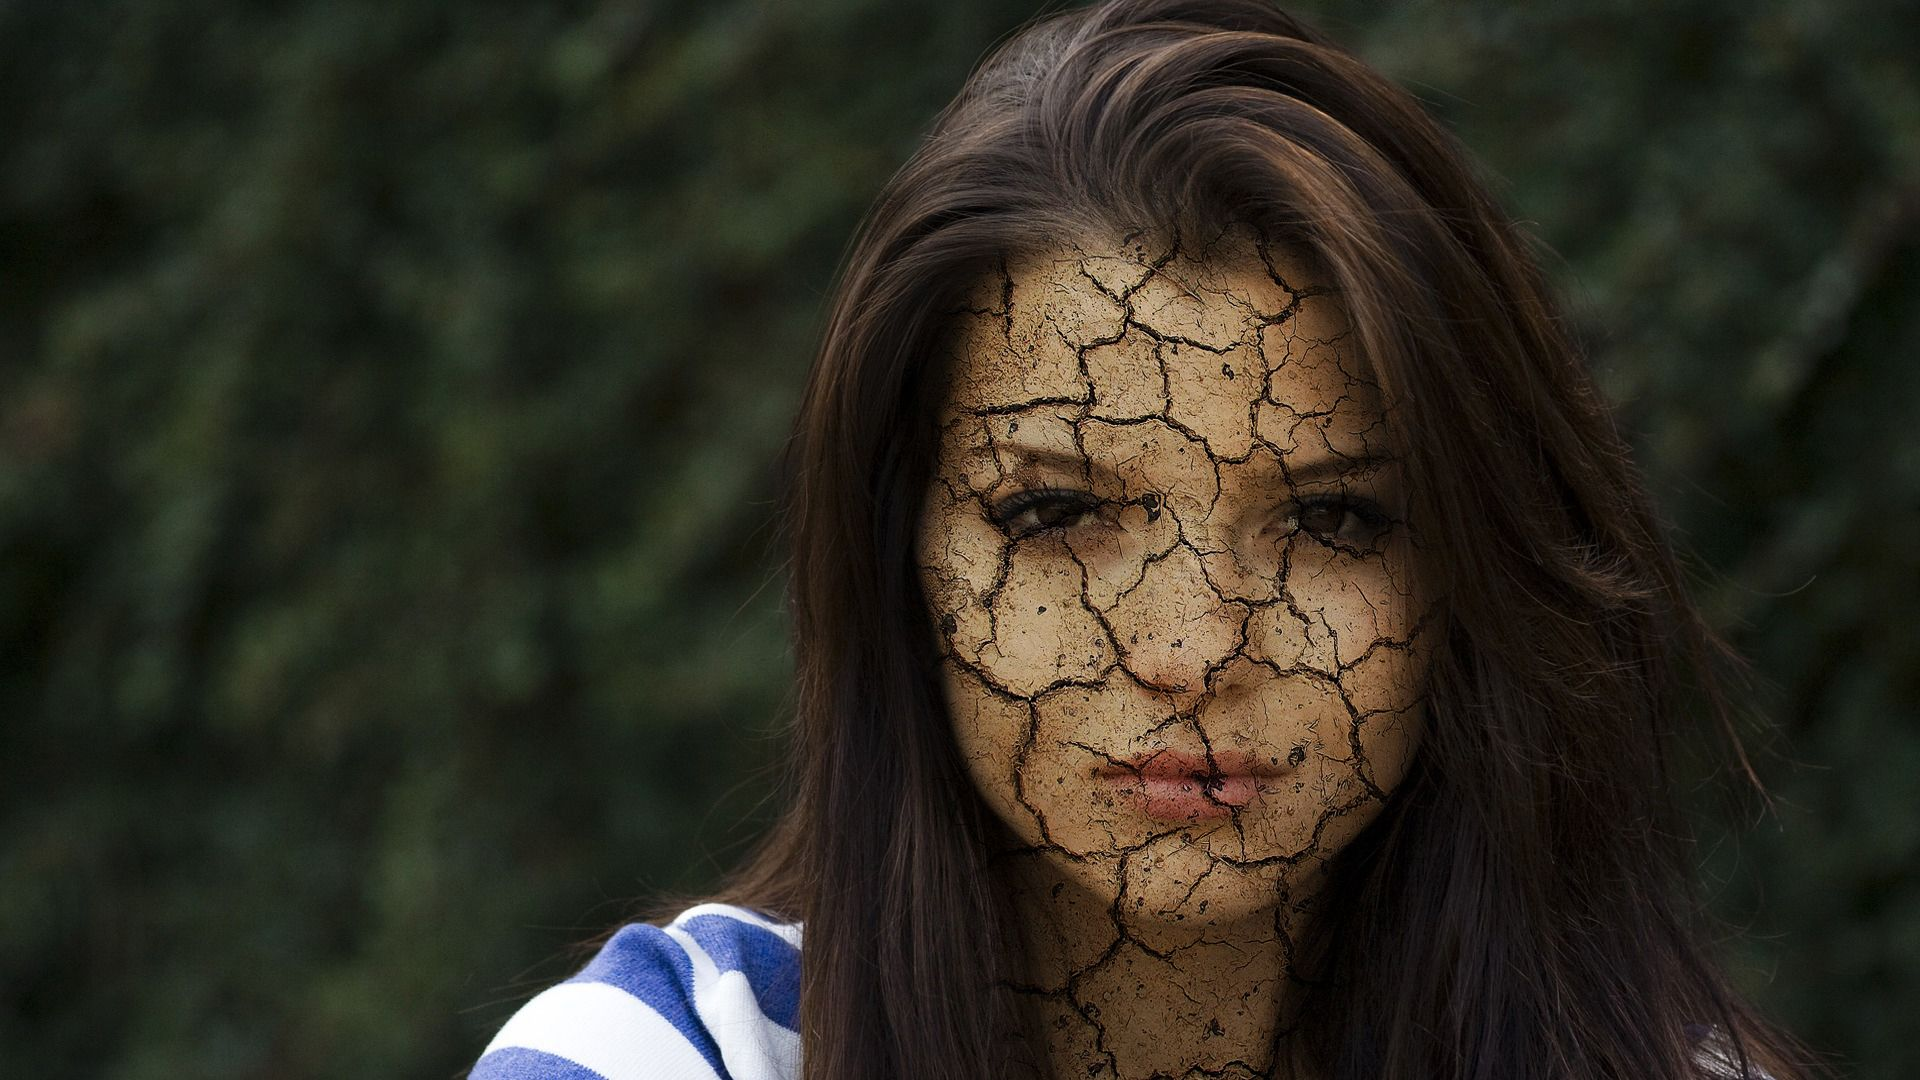 How to make Cracked Face in Photoshop